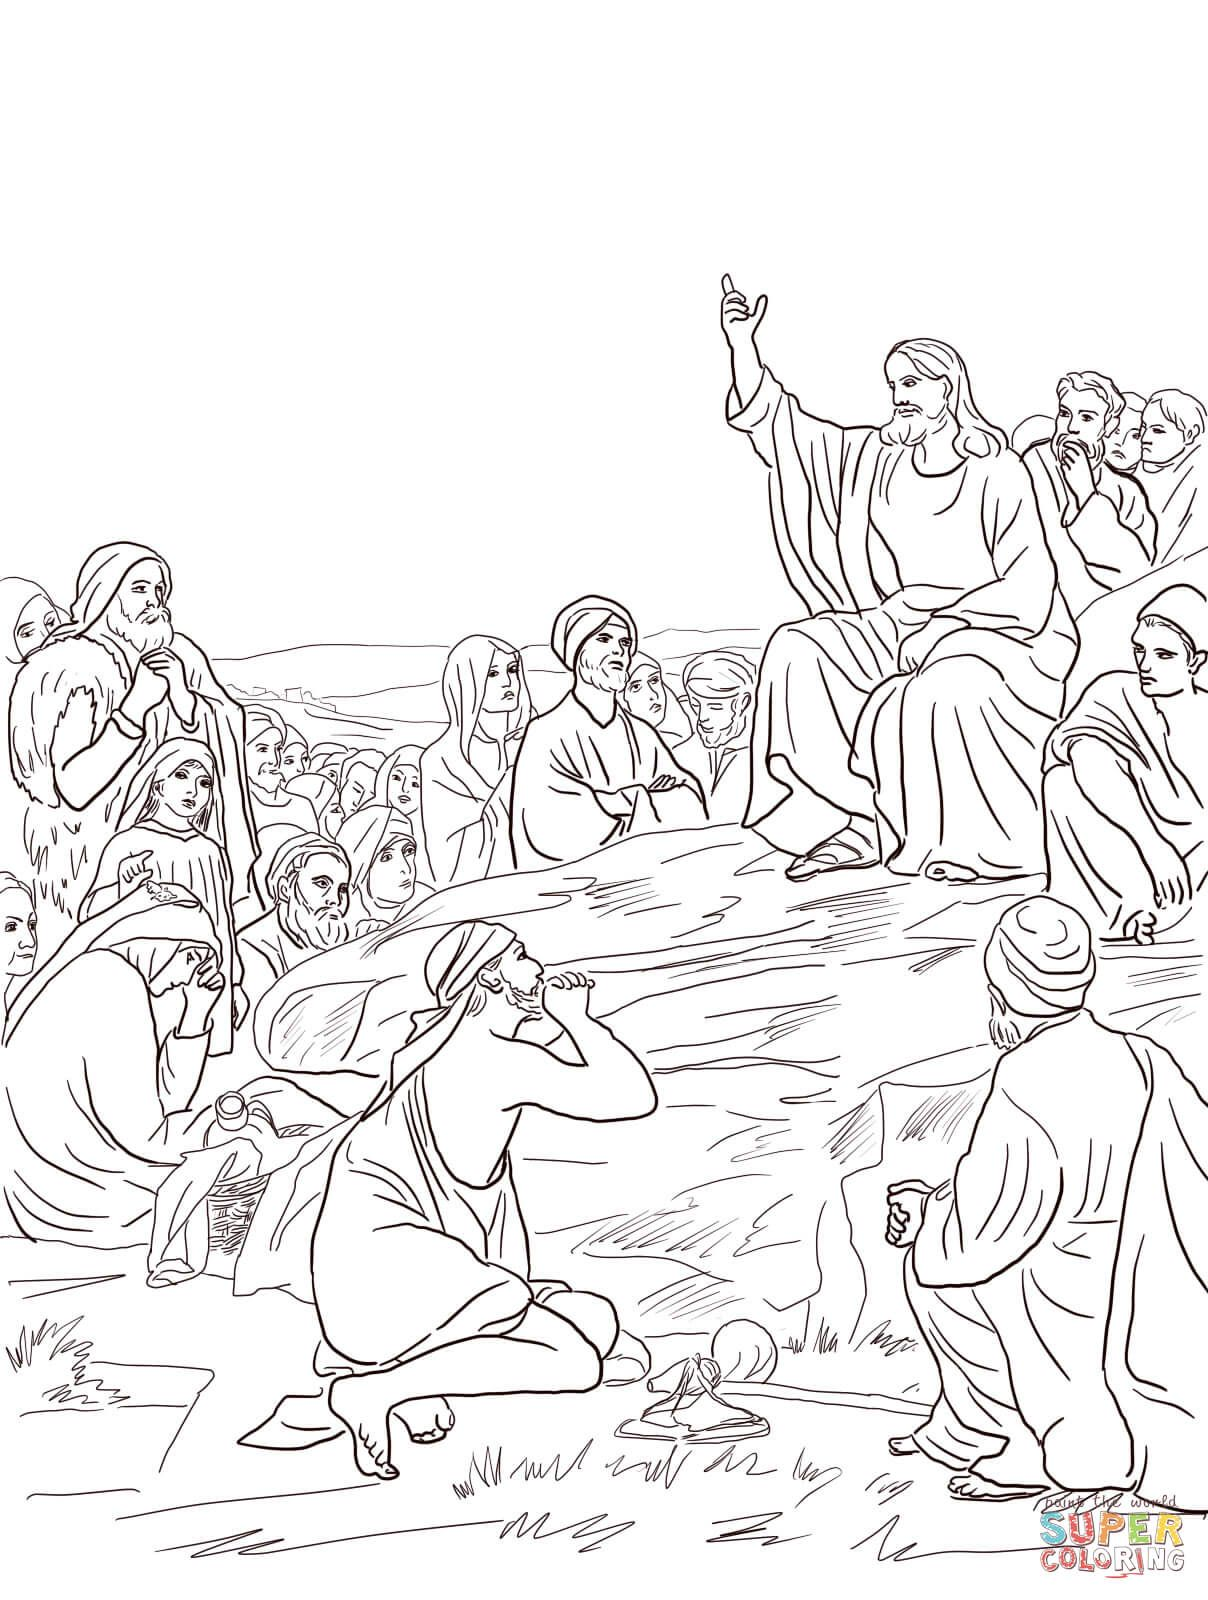 Sermon On The Mount Coloring Page Adults